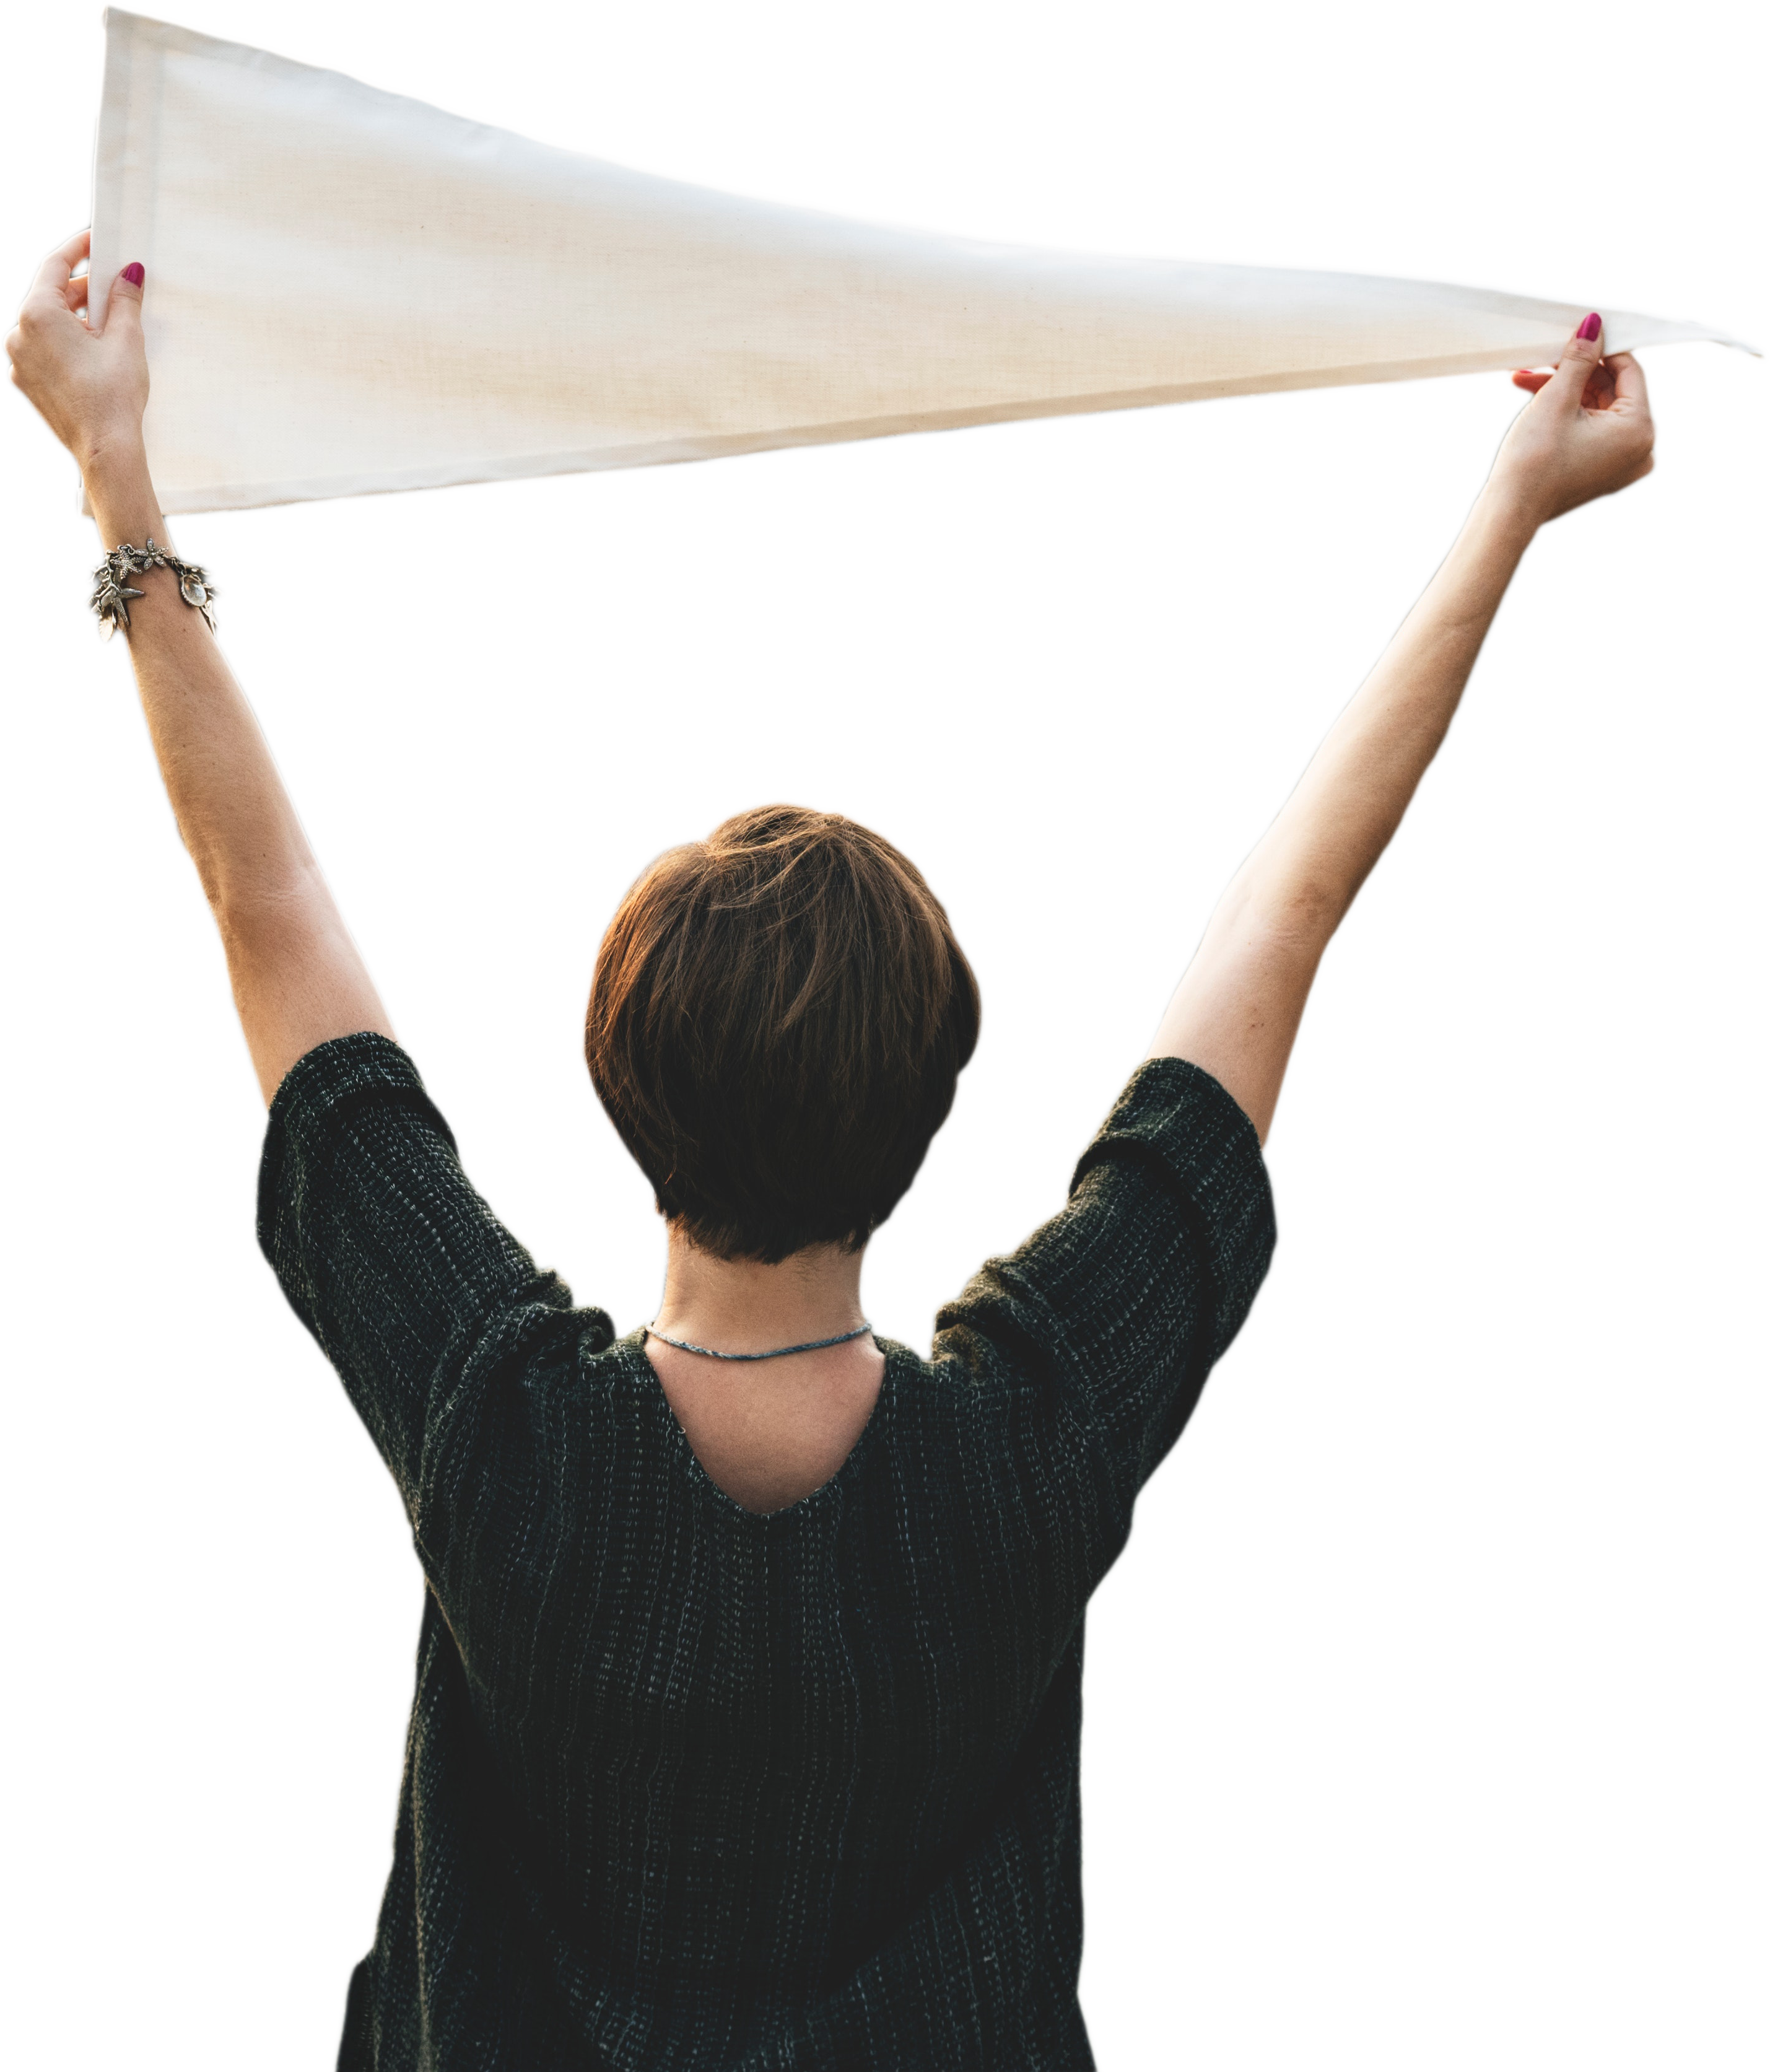 image of a person holding up a white flag